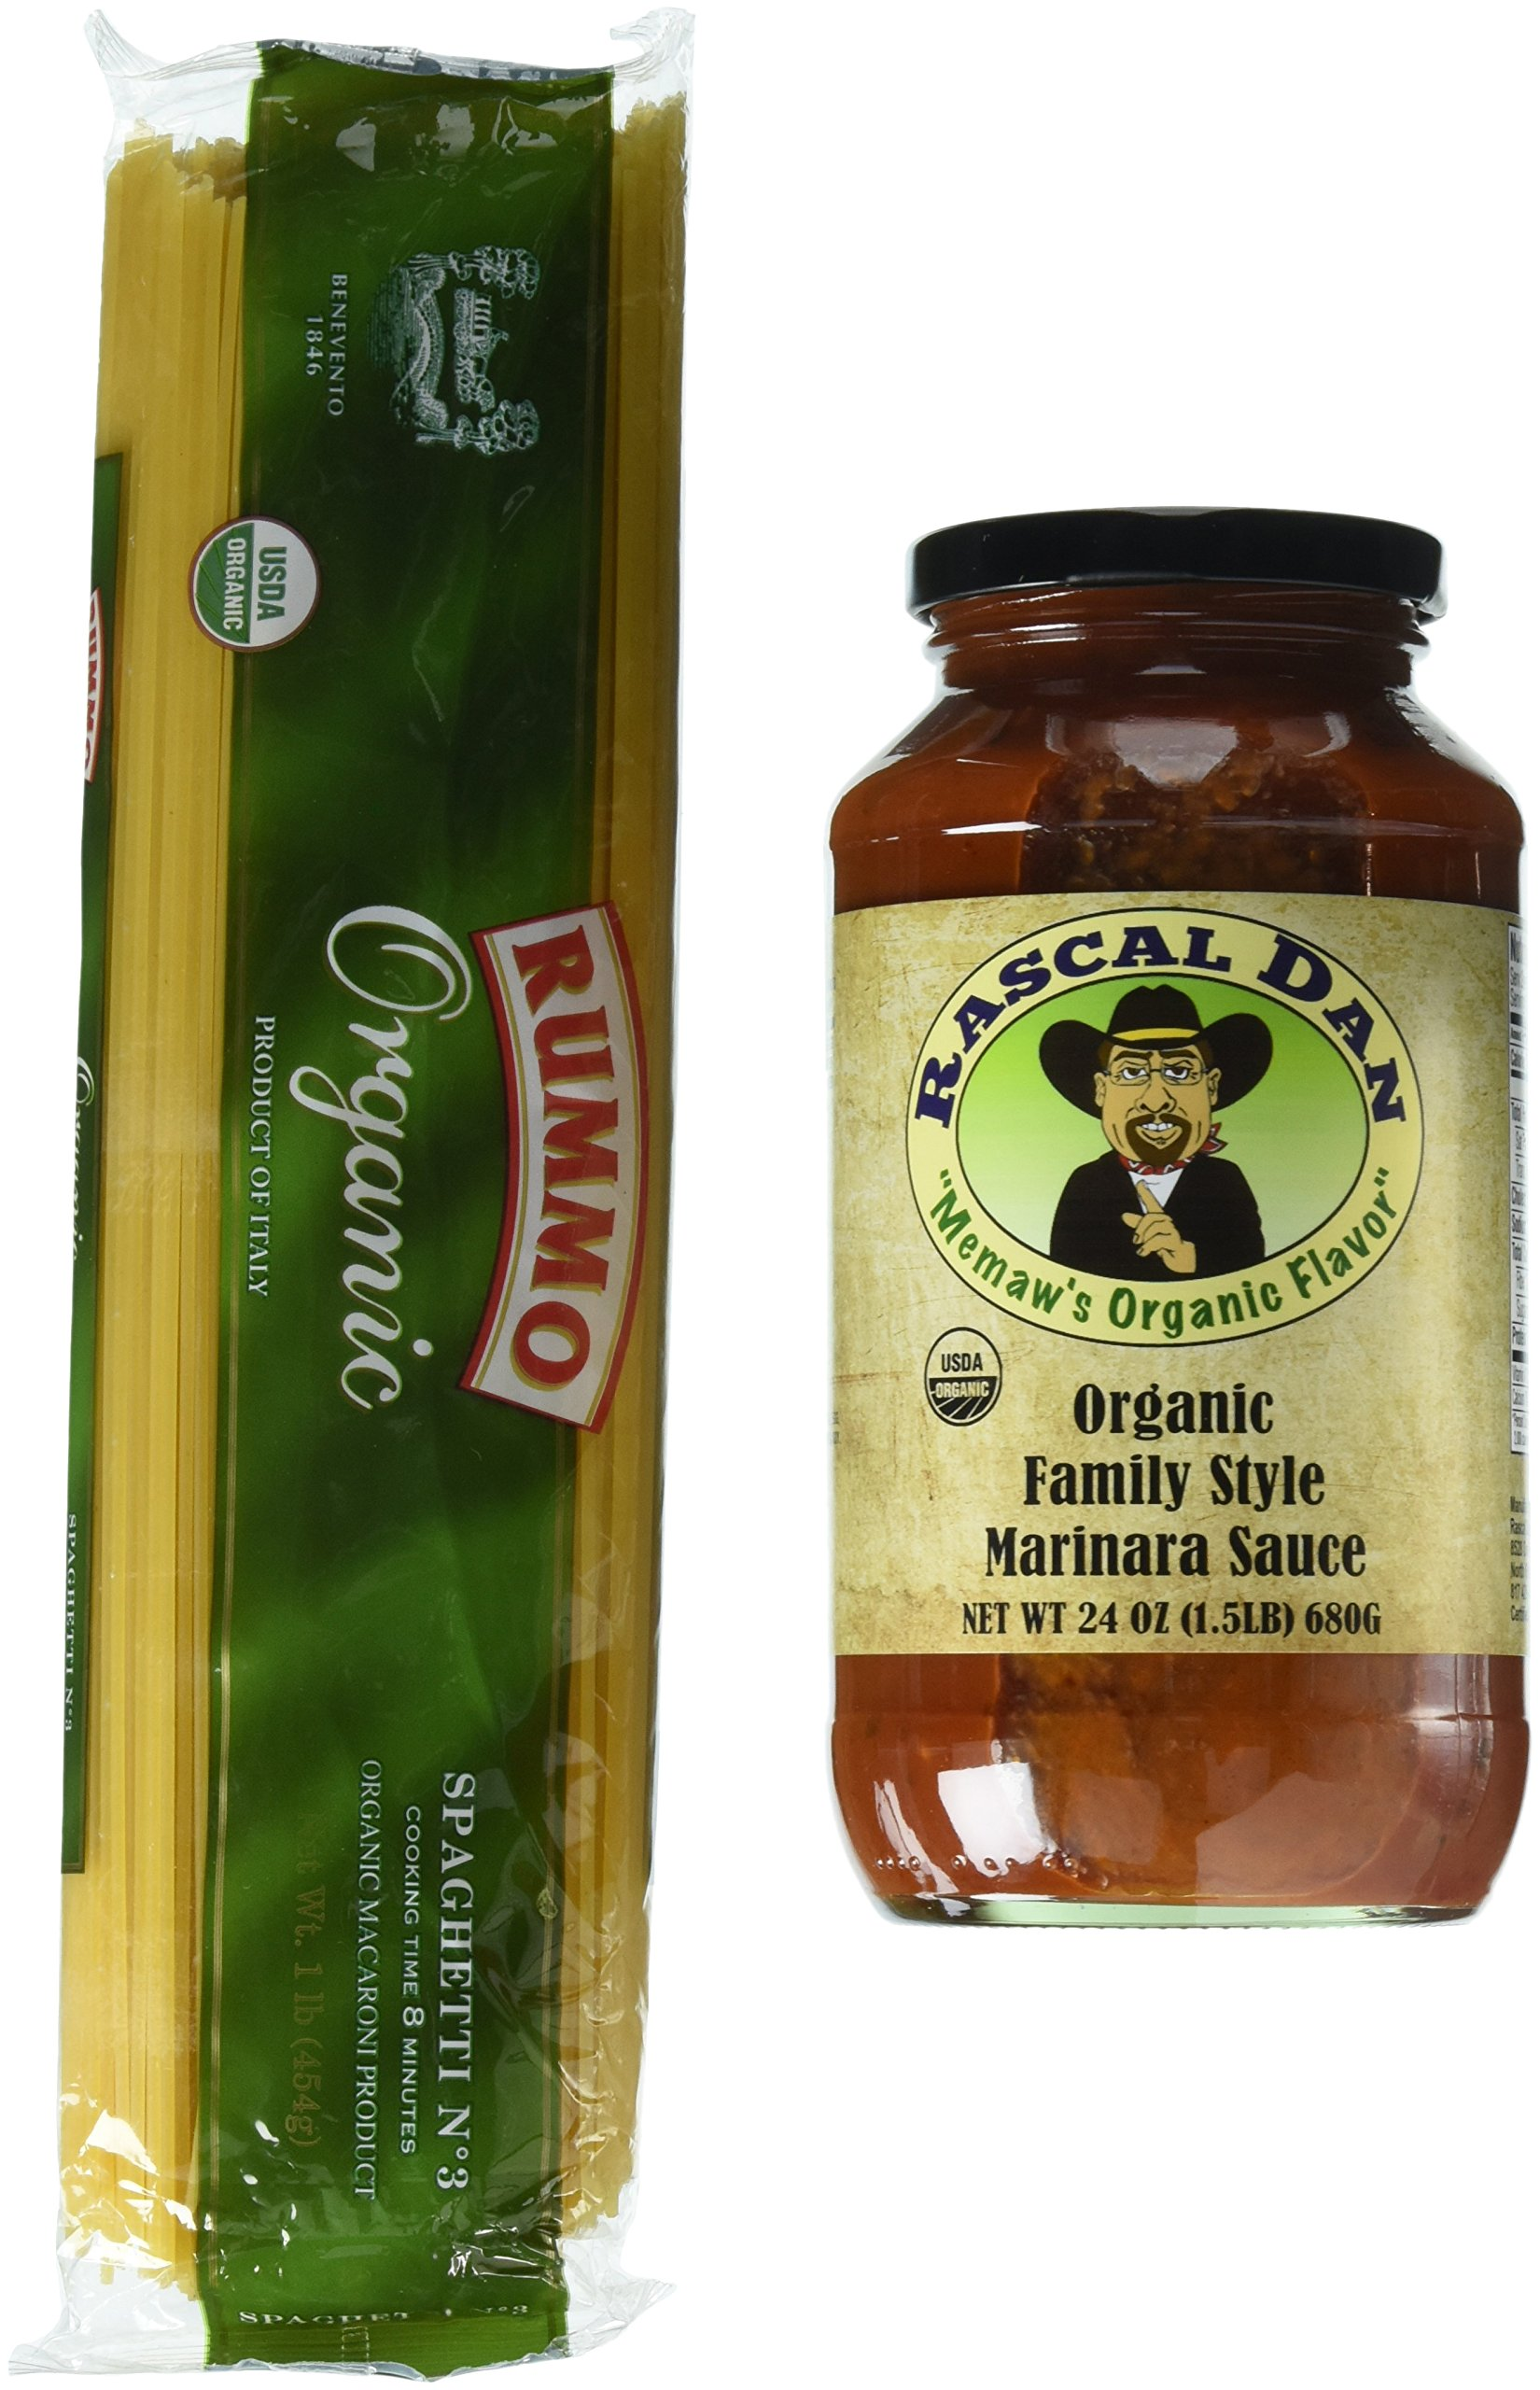 Rascal Dan Organic Food Products Pasta Family Meal with Style Marinara Sauce